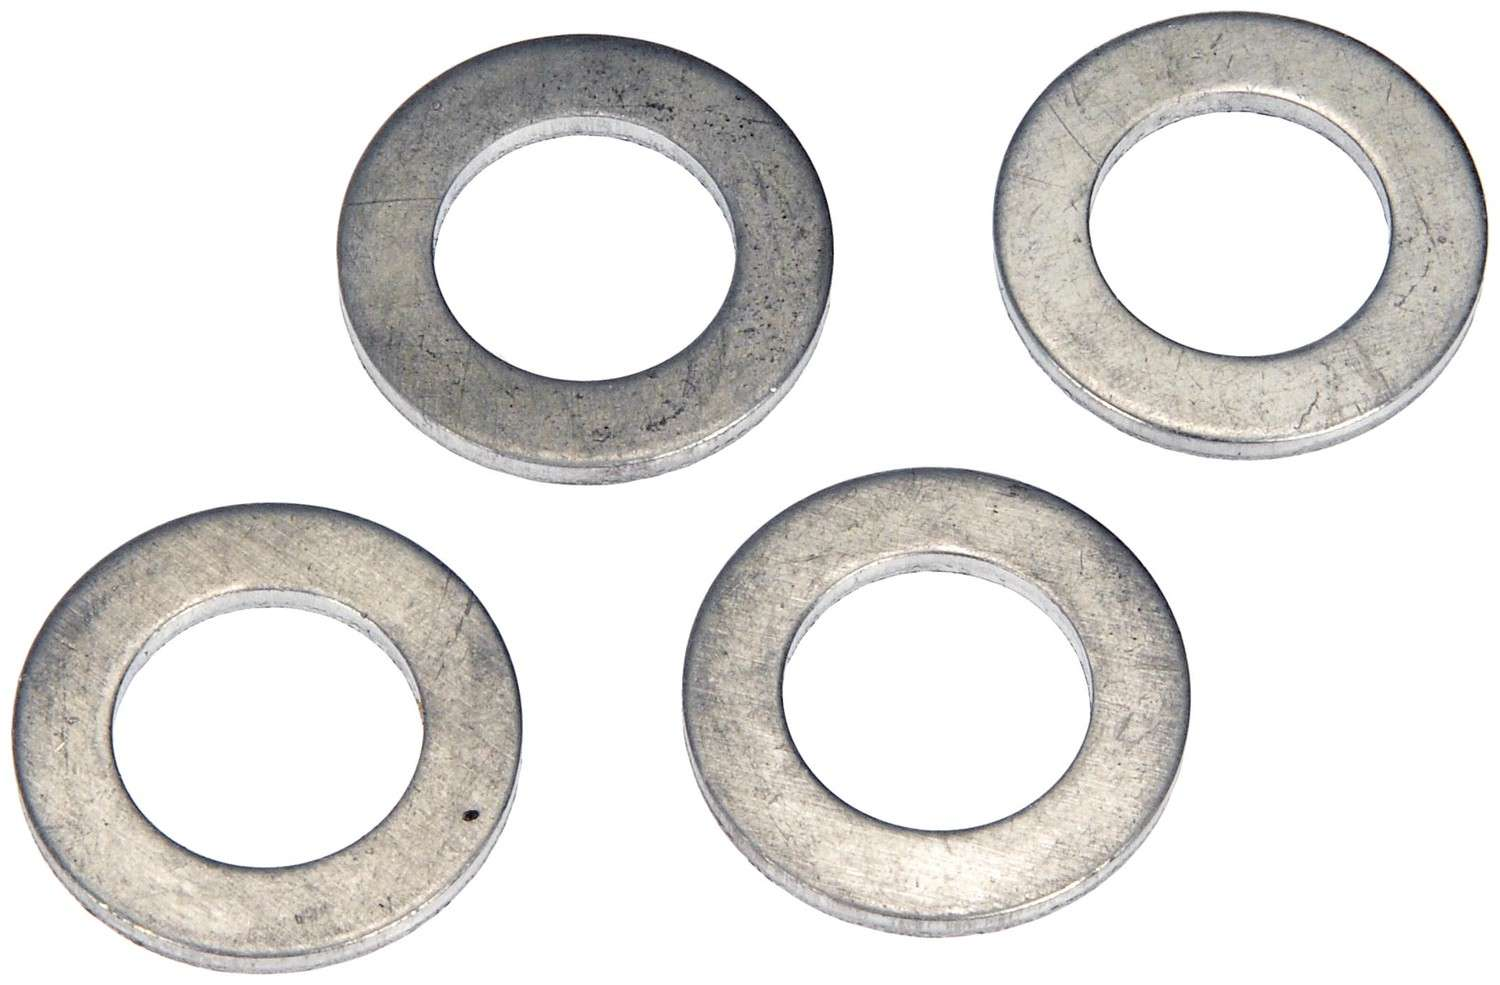 DORMAN - AUTOGRADE - Engine Oil Drain Plug Gasket - DOC 095-015.1